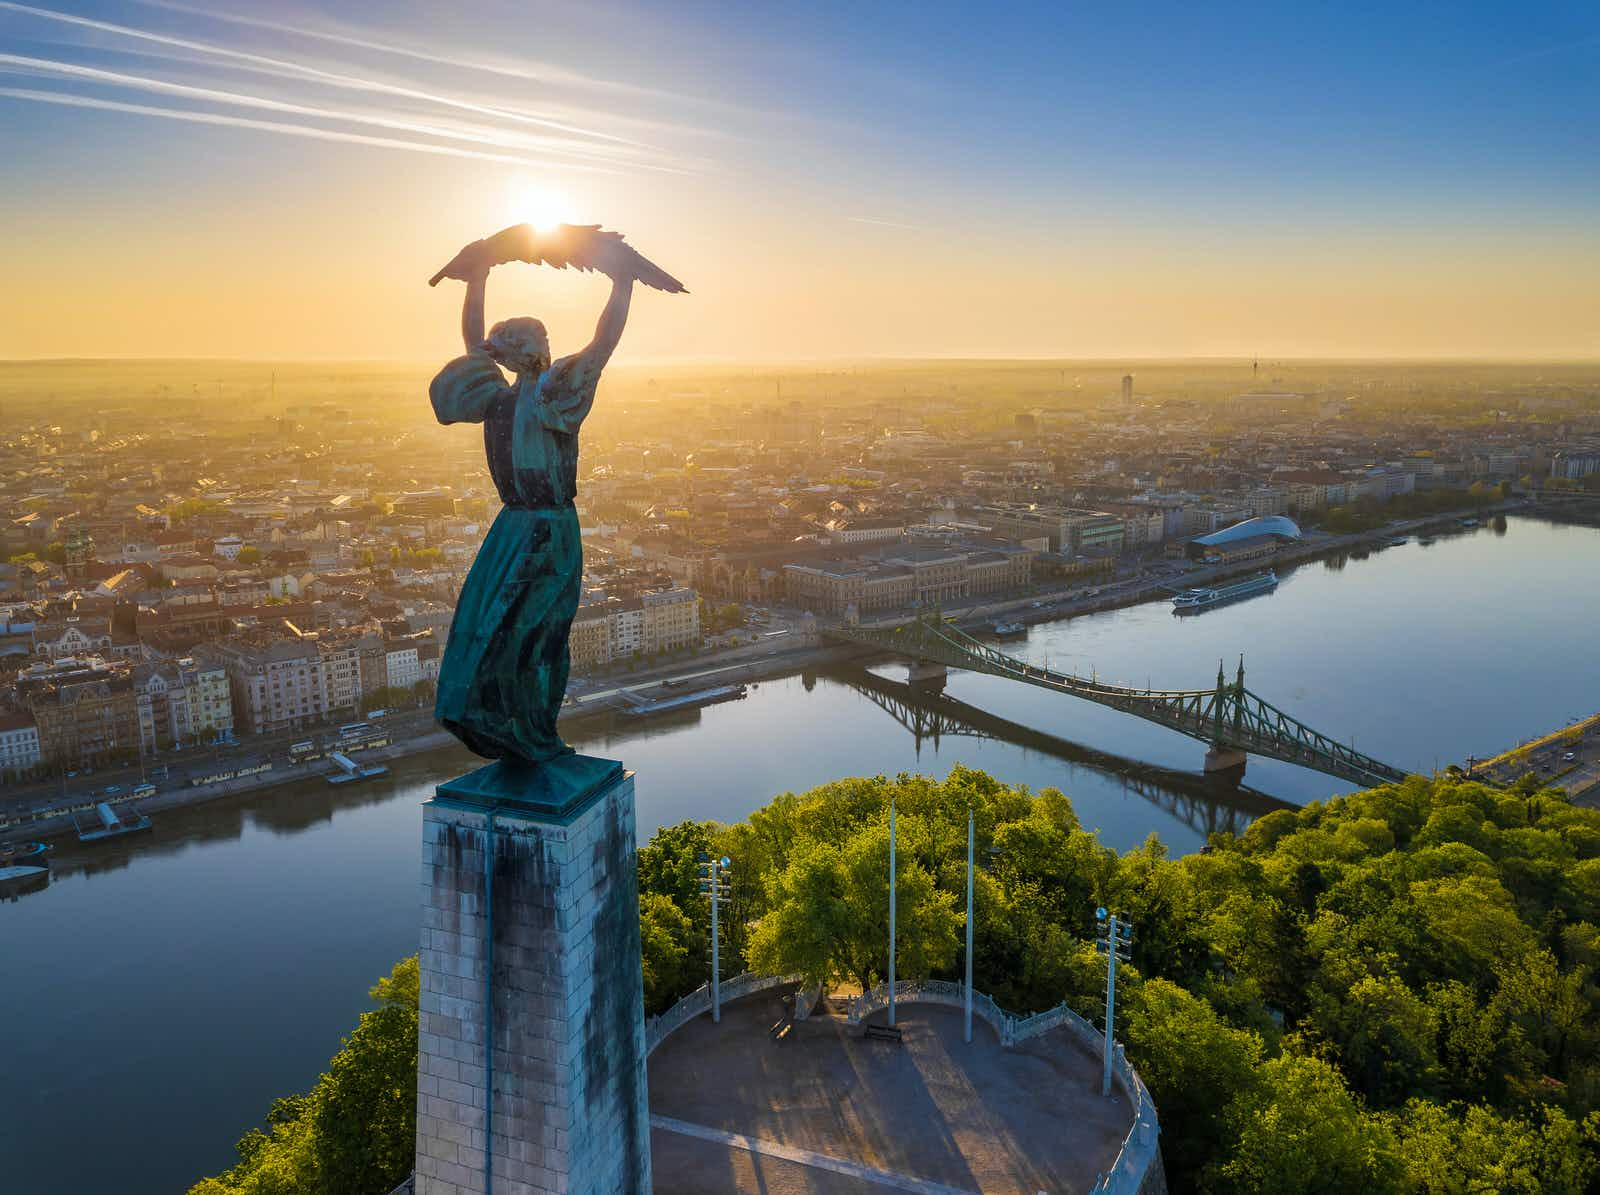 Aerial of the Hungarian Statue of Liberty with Liberty Bridge and the Budapest skyline during sunrise.